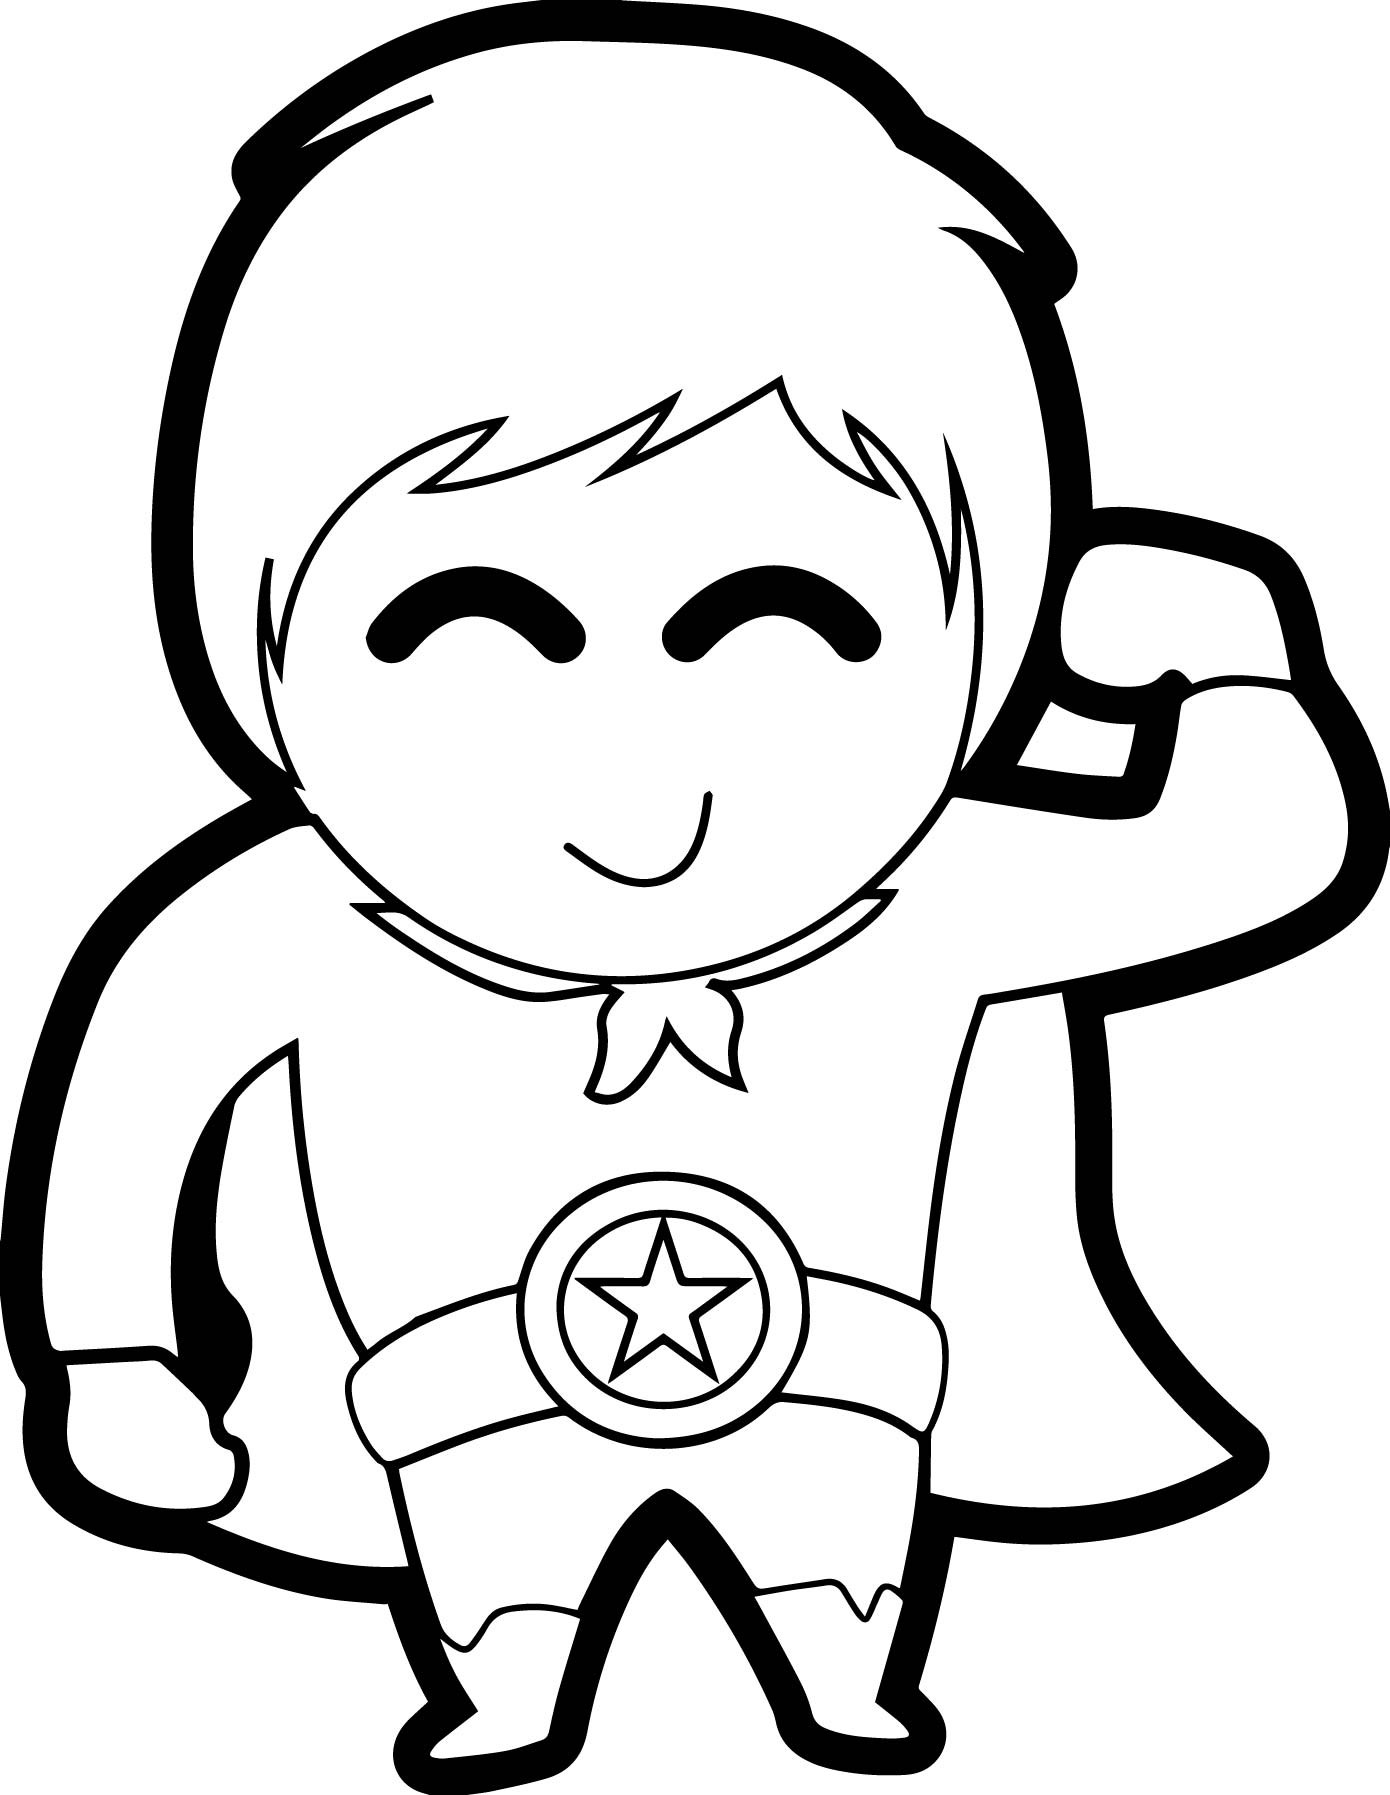 Cute Coloring Pages For Boys  Cute Boy Heroes Coloring Page